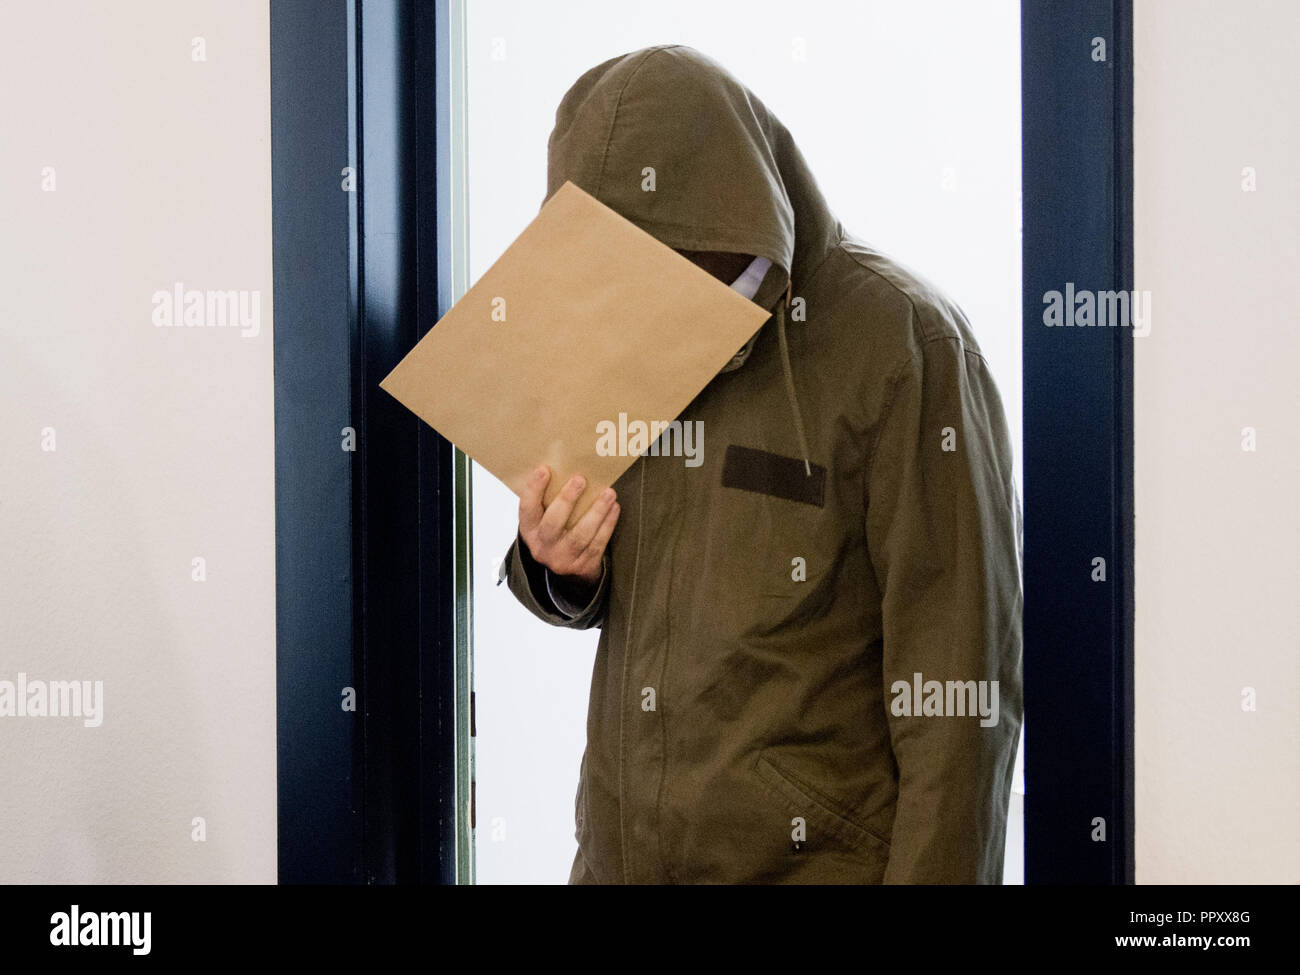 28 September 2018, Lower Saxony, Celle: One of the two defendants enters a room of the district court. Because it allegedly supported the terrorist militia Islamic State IS and called for attacks, a pair of twins from Salzgitter have to answer to the Higher Regional Court in Celle. The trial shall take place on the premises of the Local Court. Photo: Julian Stratenschulte/dpa - Stock Image